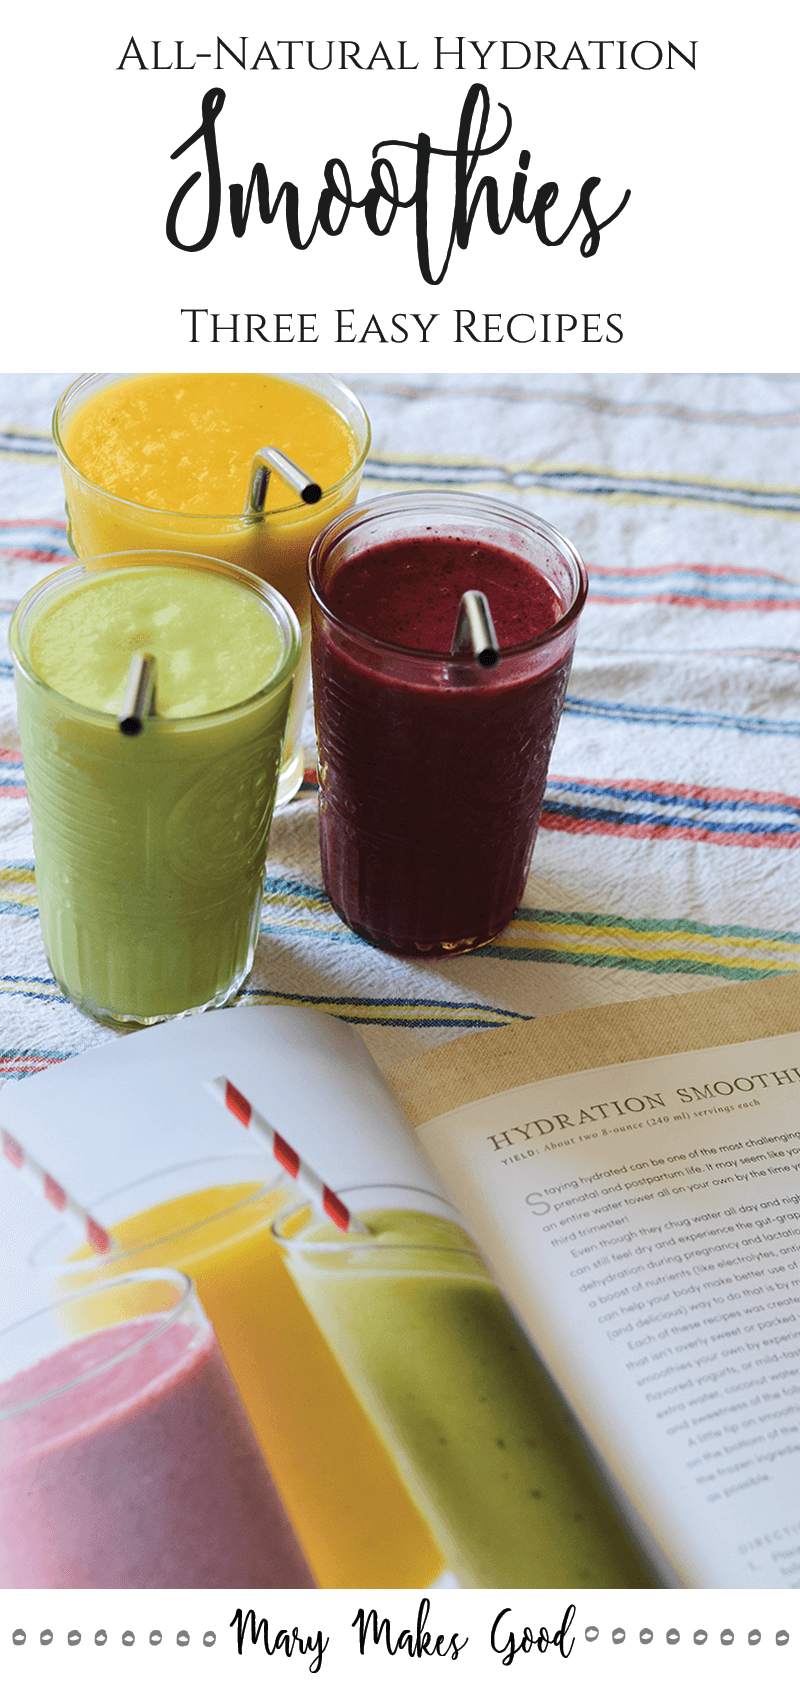 Hydration Smoothies - Three Easy Recipes from The Handmade Mama by Mary Helen Leonard